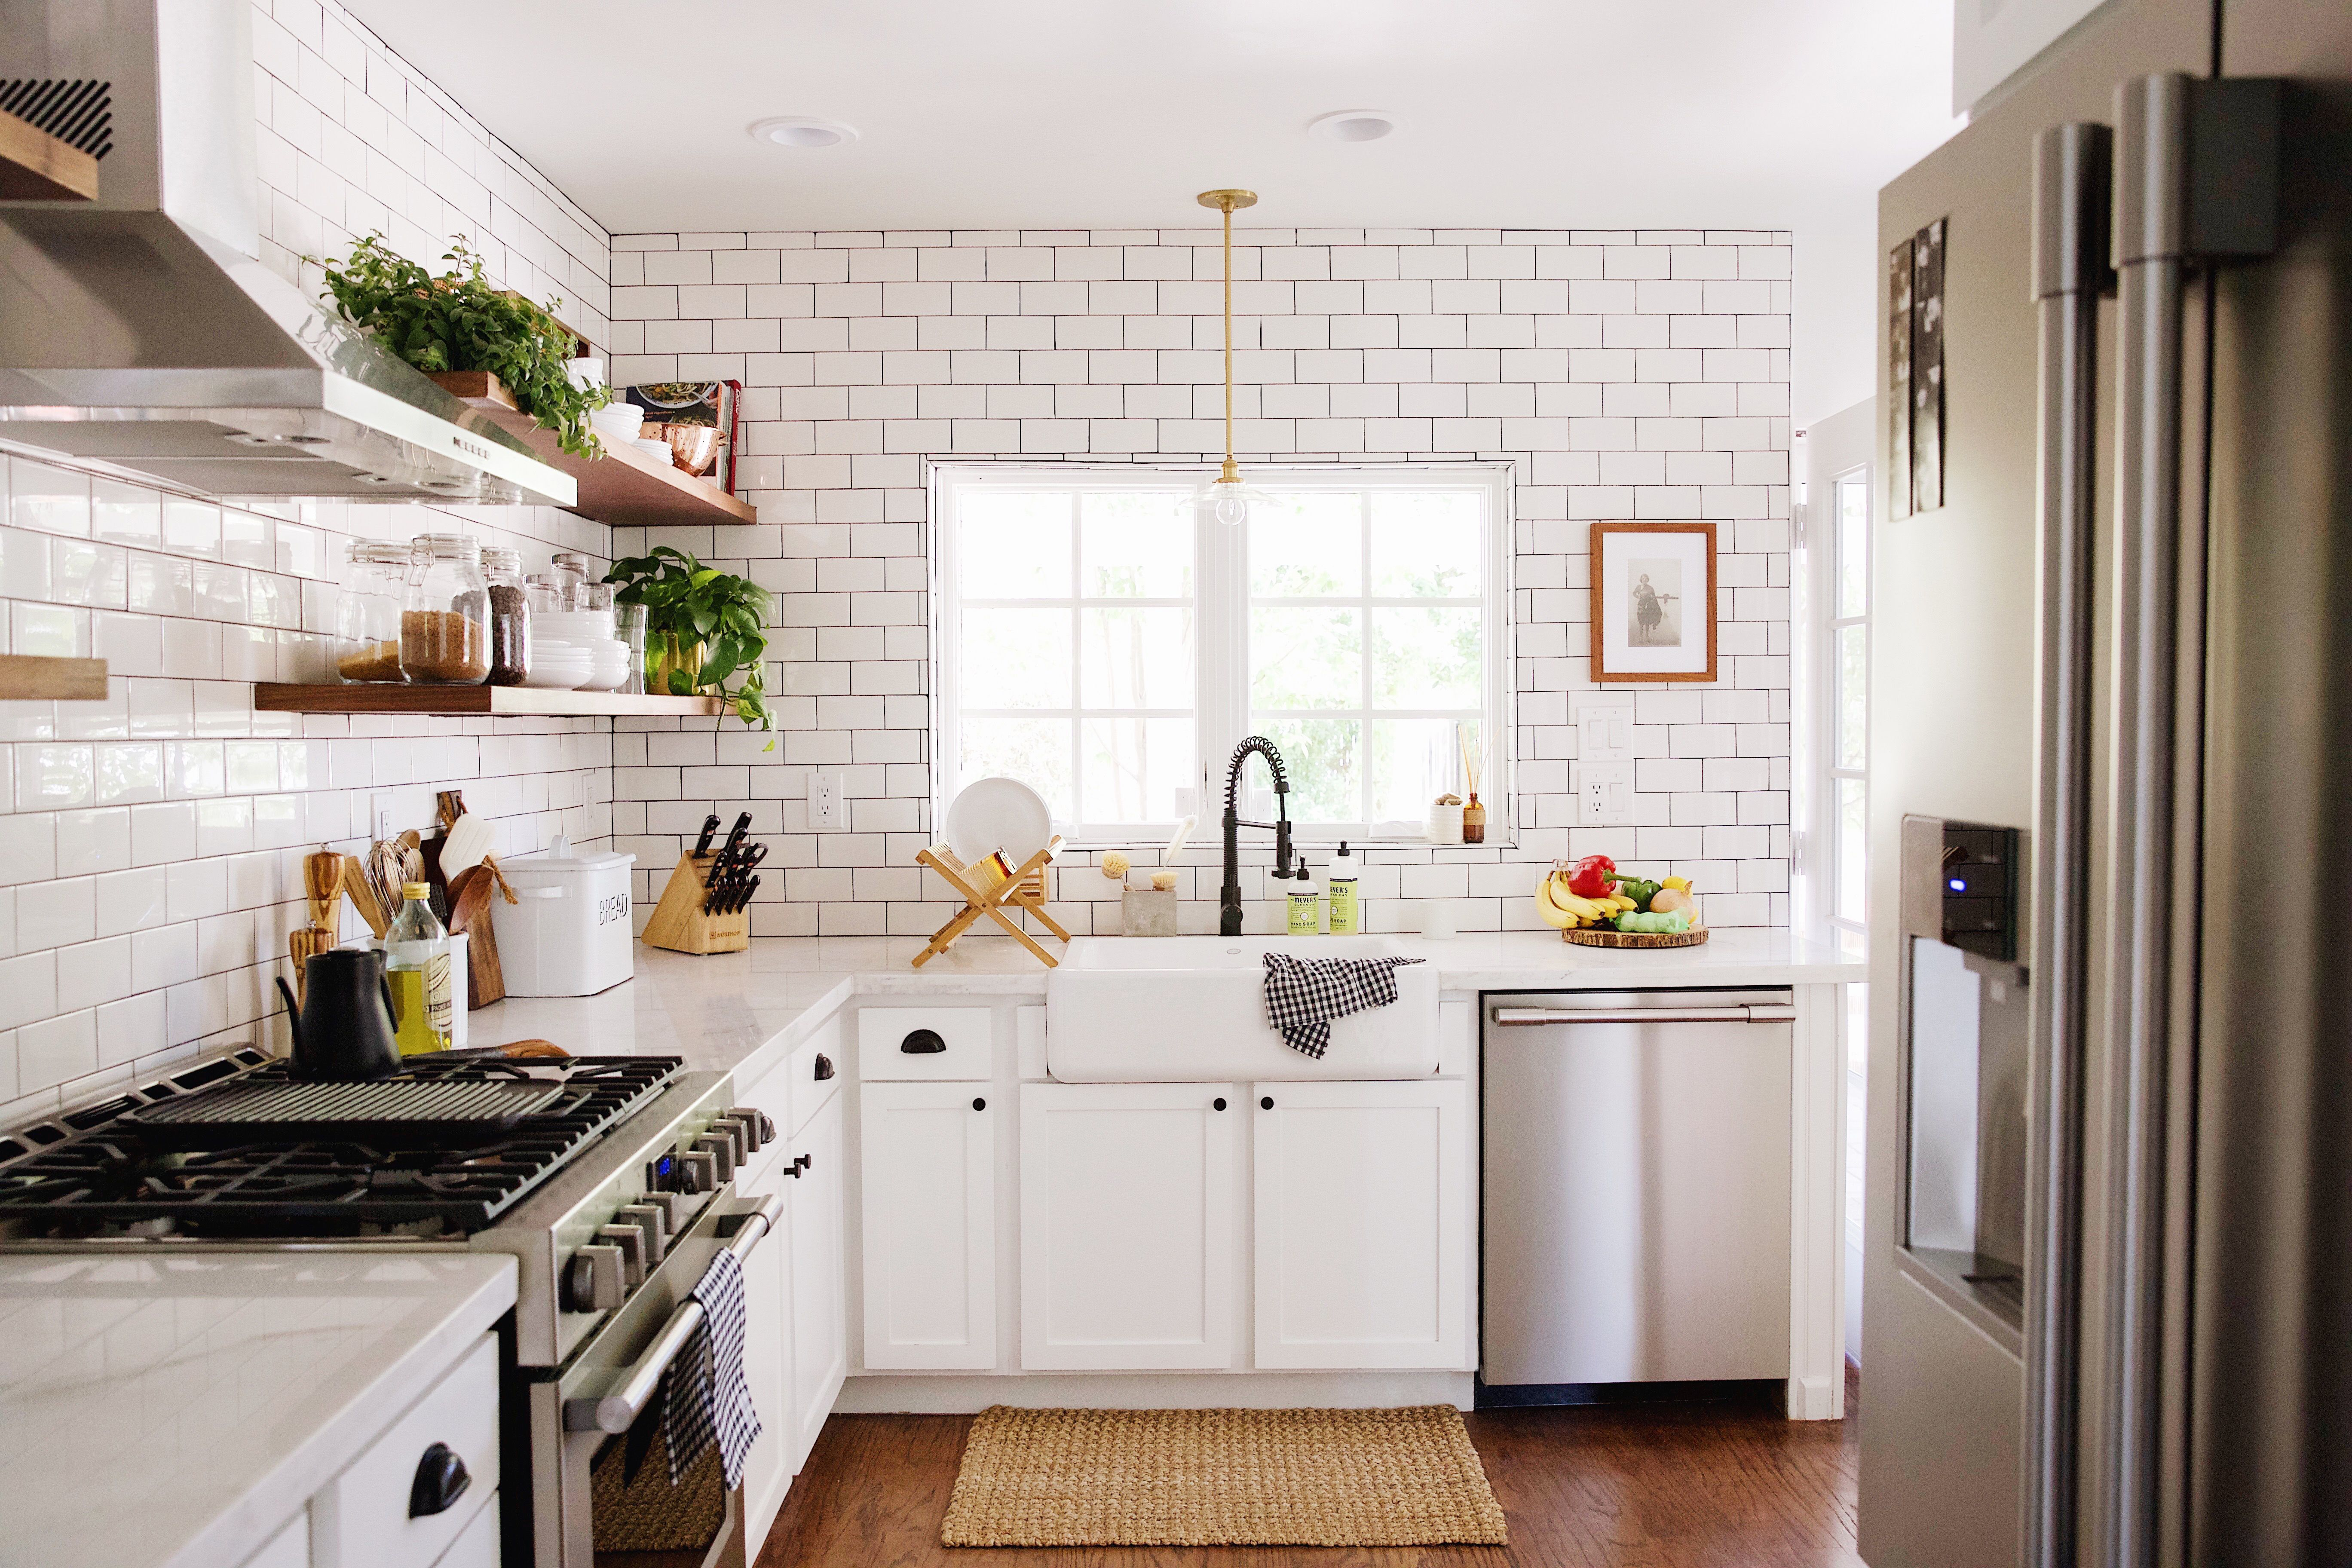 We are so happy to be sharing our kitchen makeover with you guys